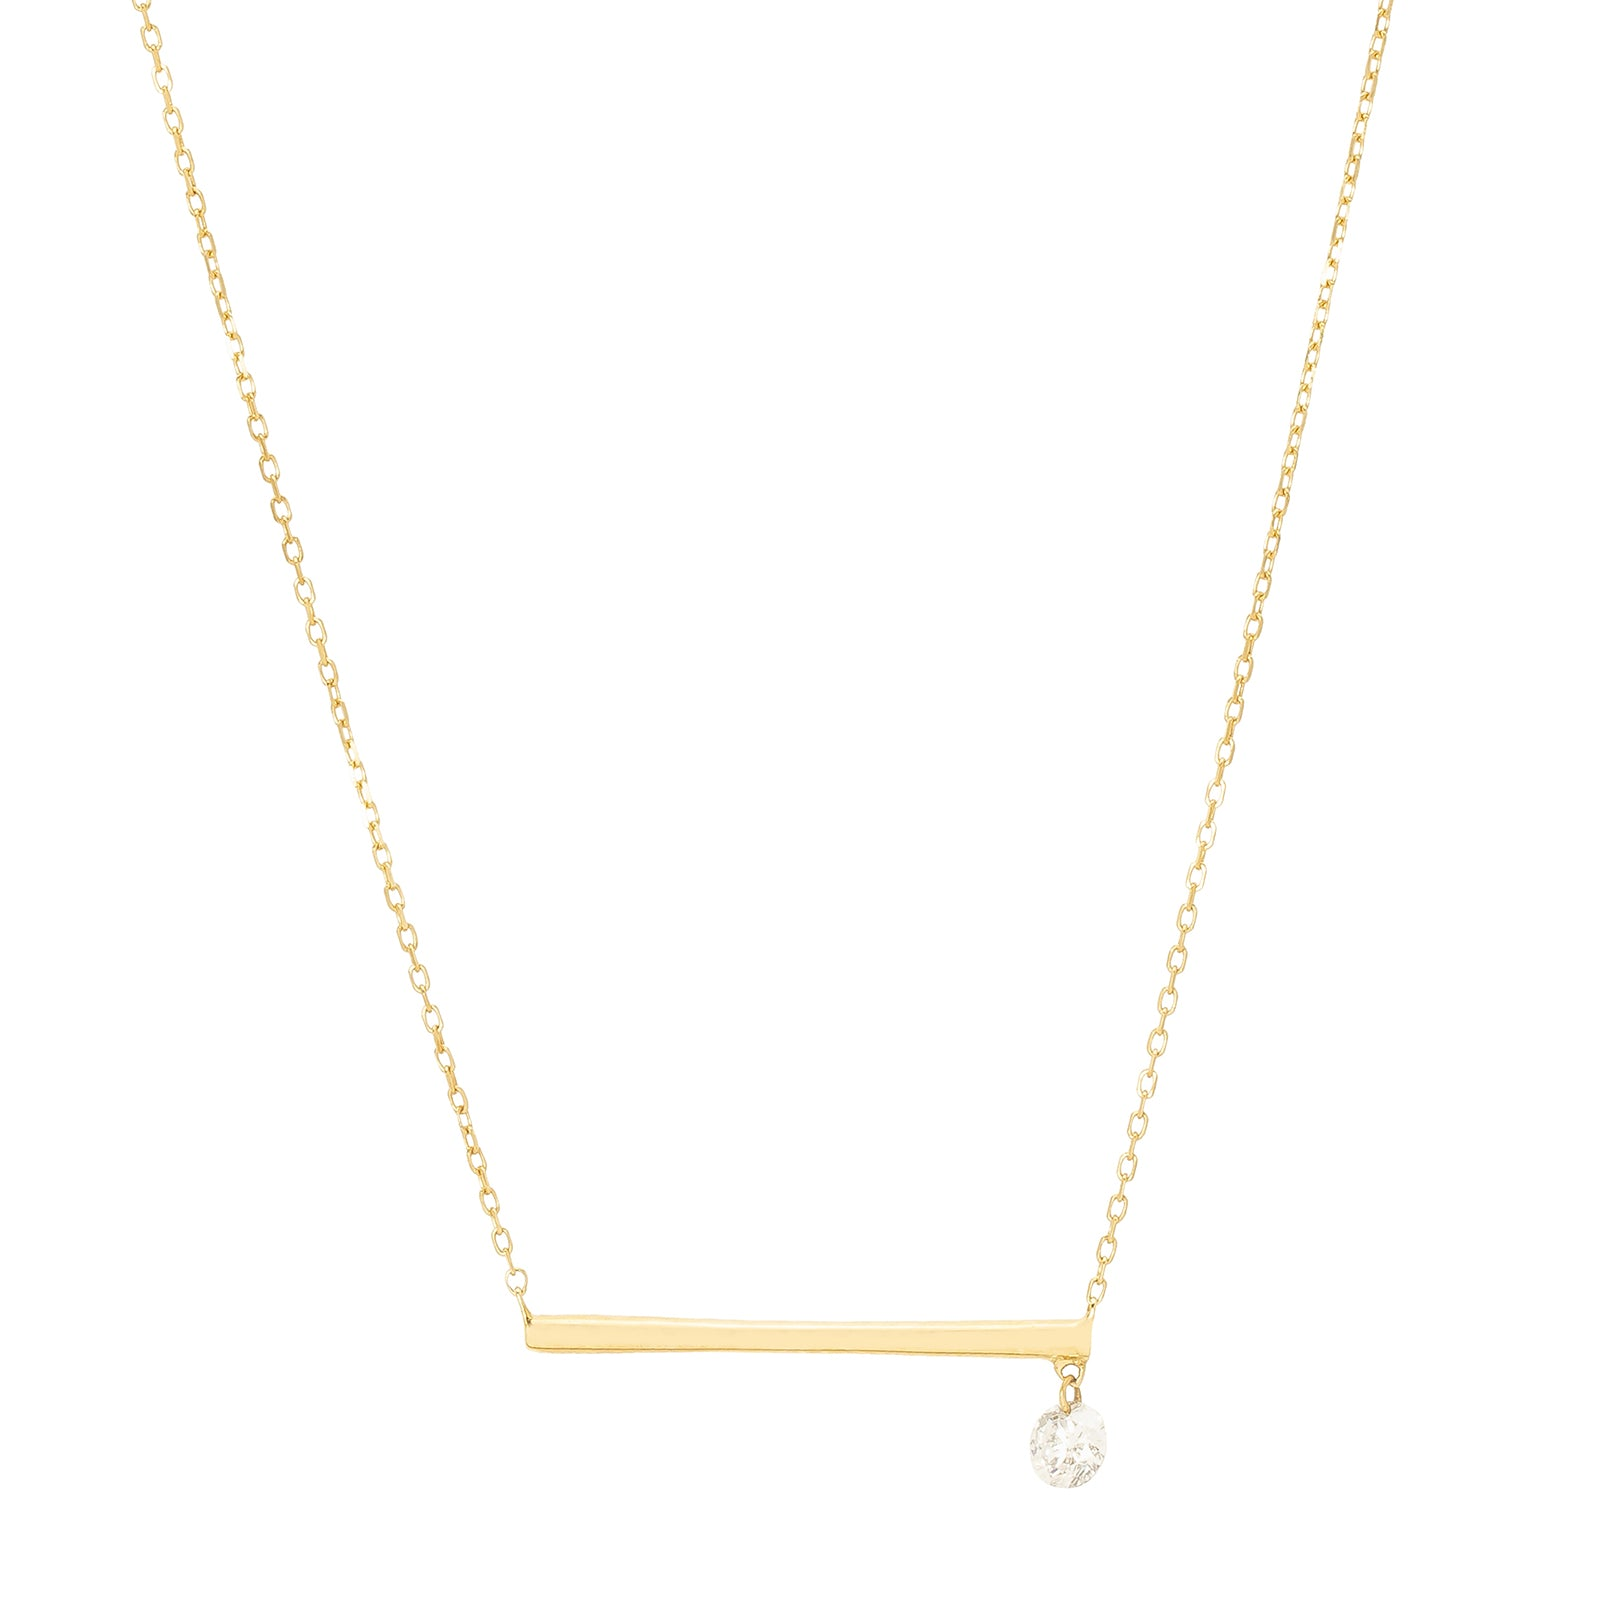 Persée Paris Bar Drop Necklace - Yellow Gold - Necklaces - Broken English Jewelry